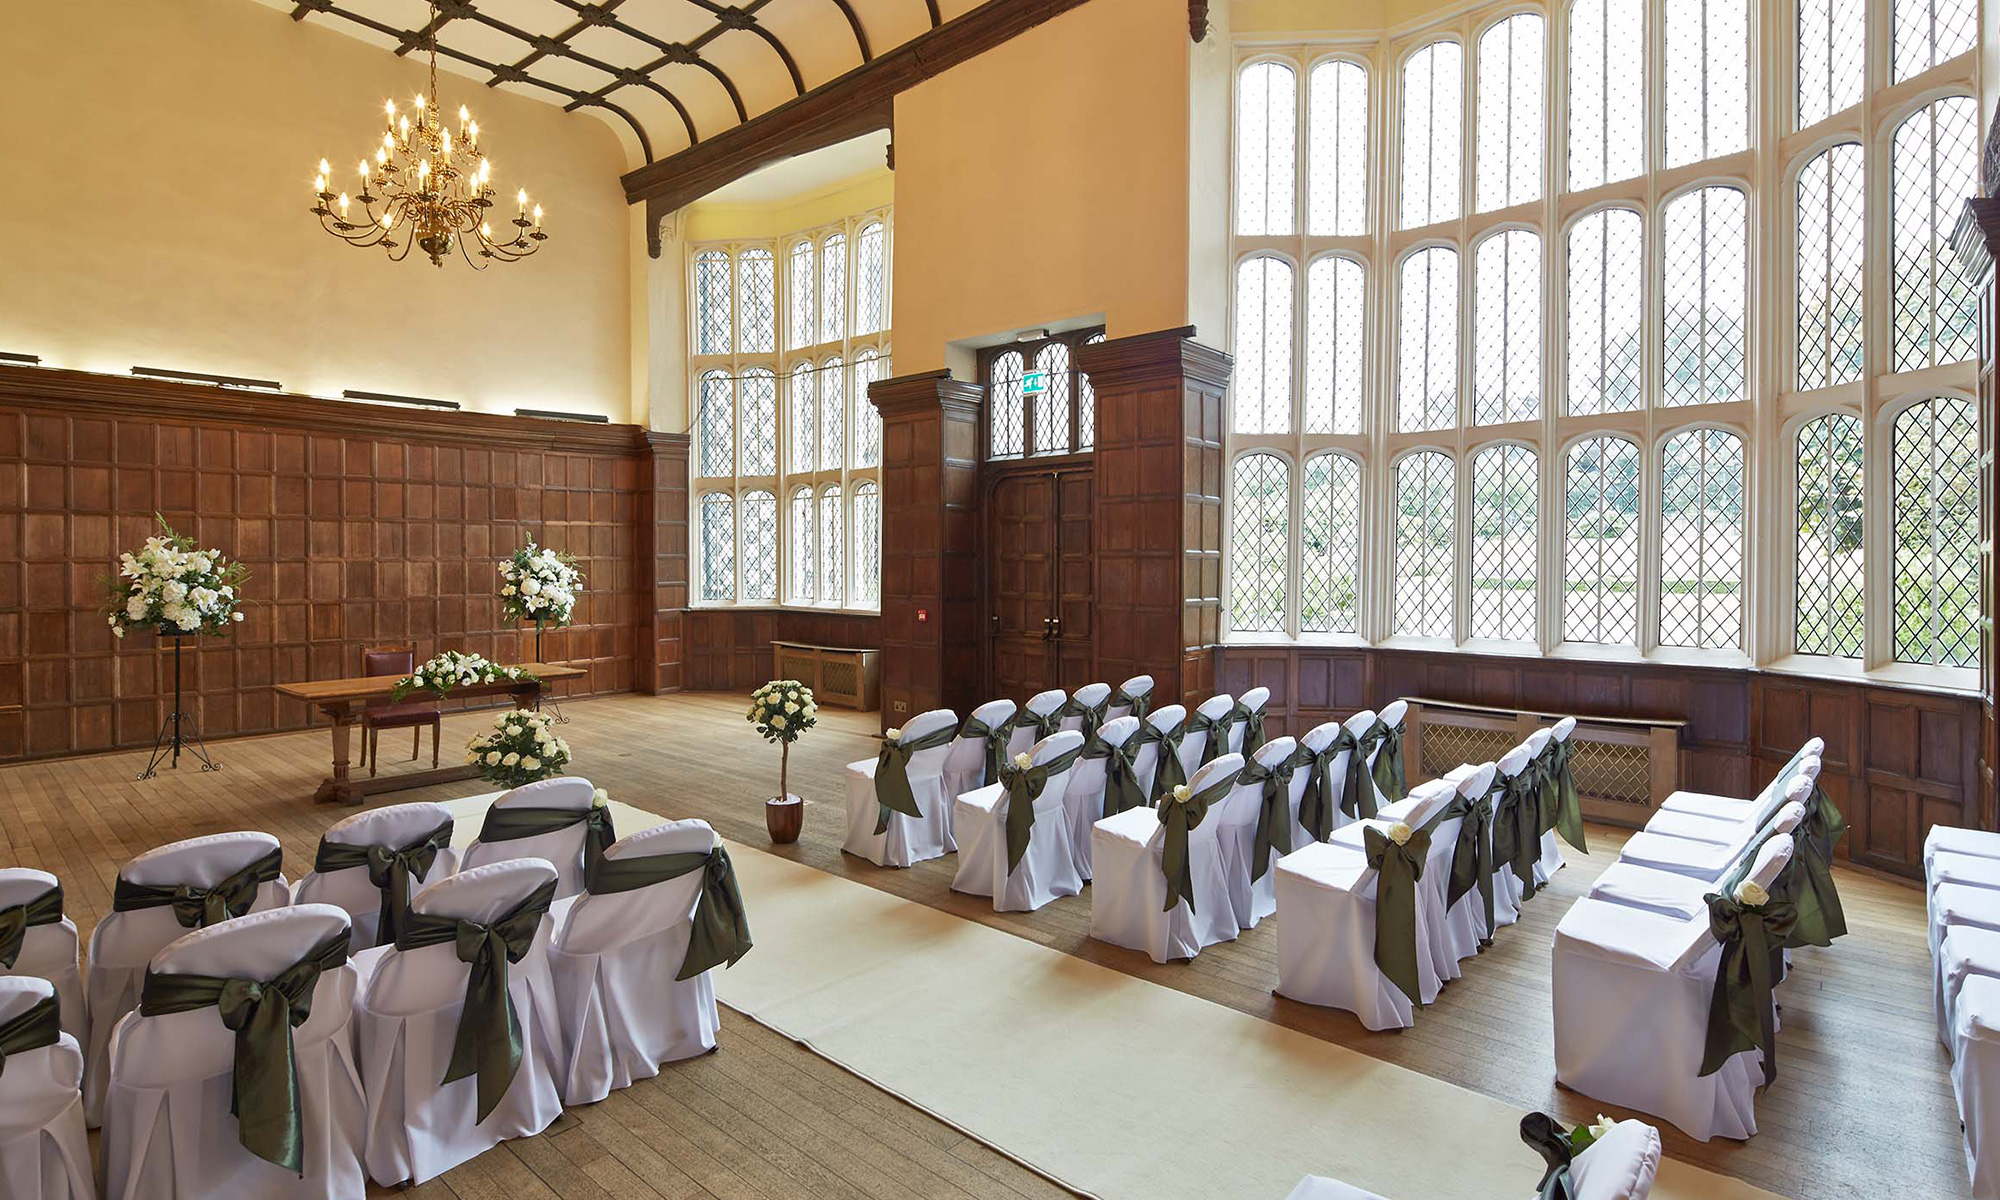 Promoting Weddings at Hall Place